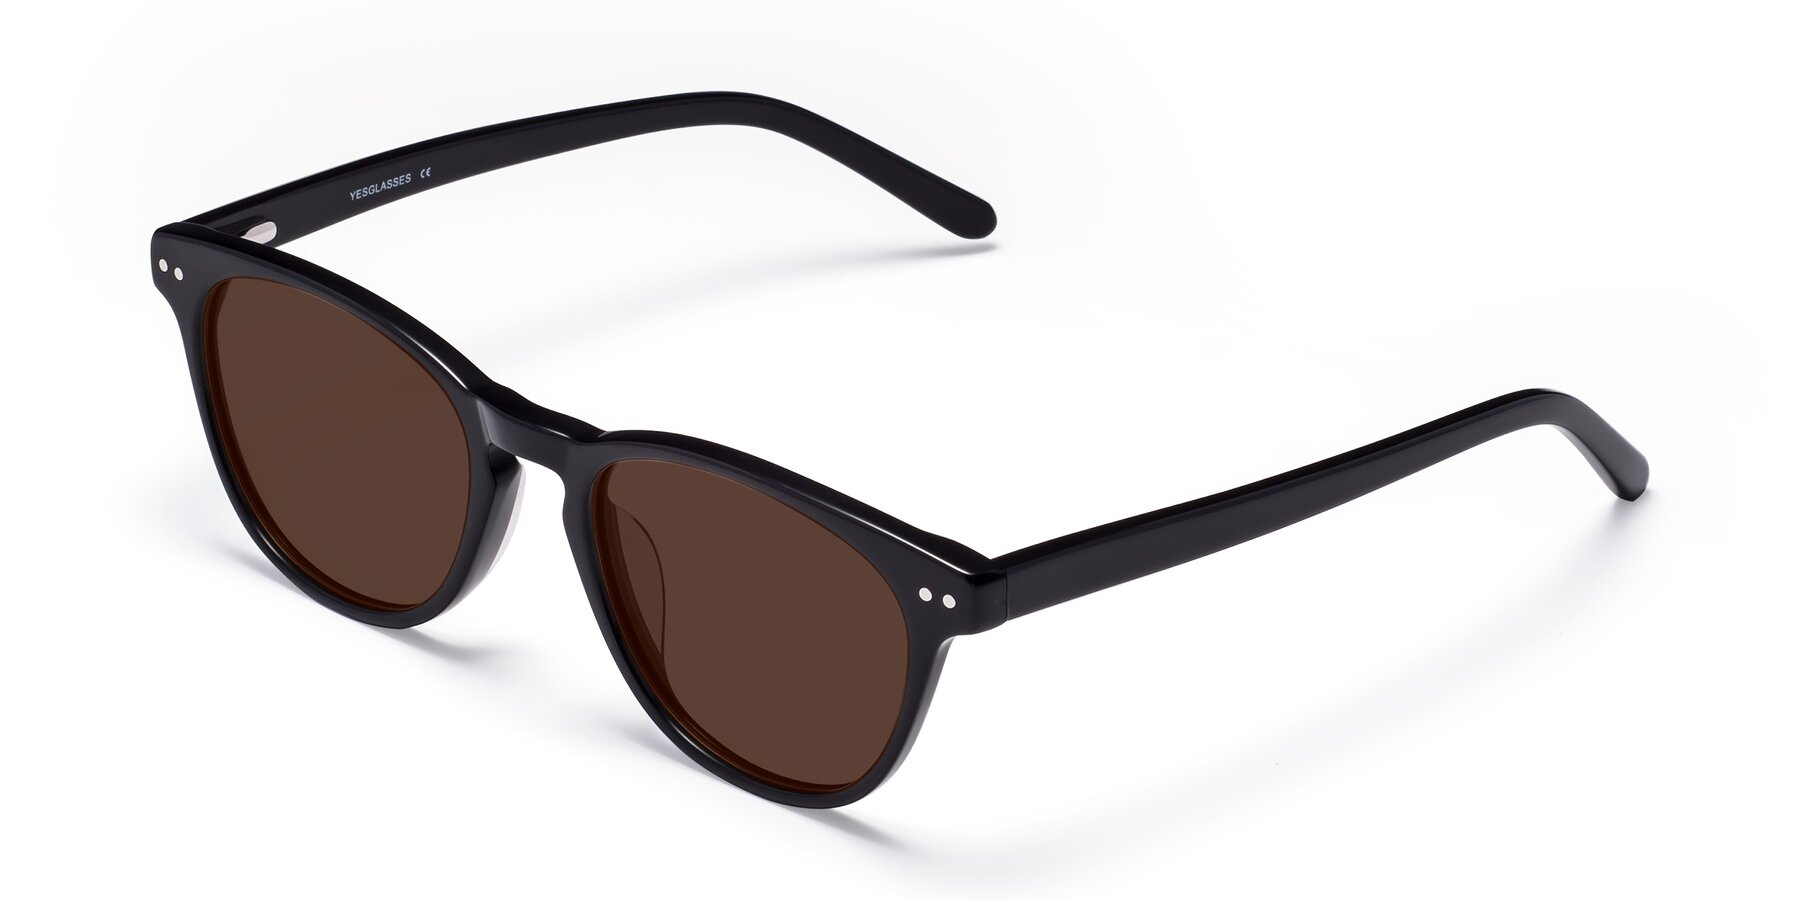 Angle of Blaze in Black with Brown Tinted Lenses